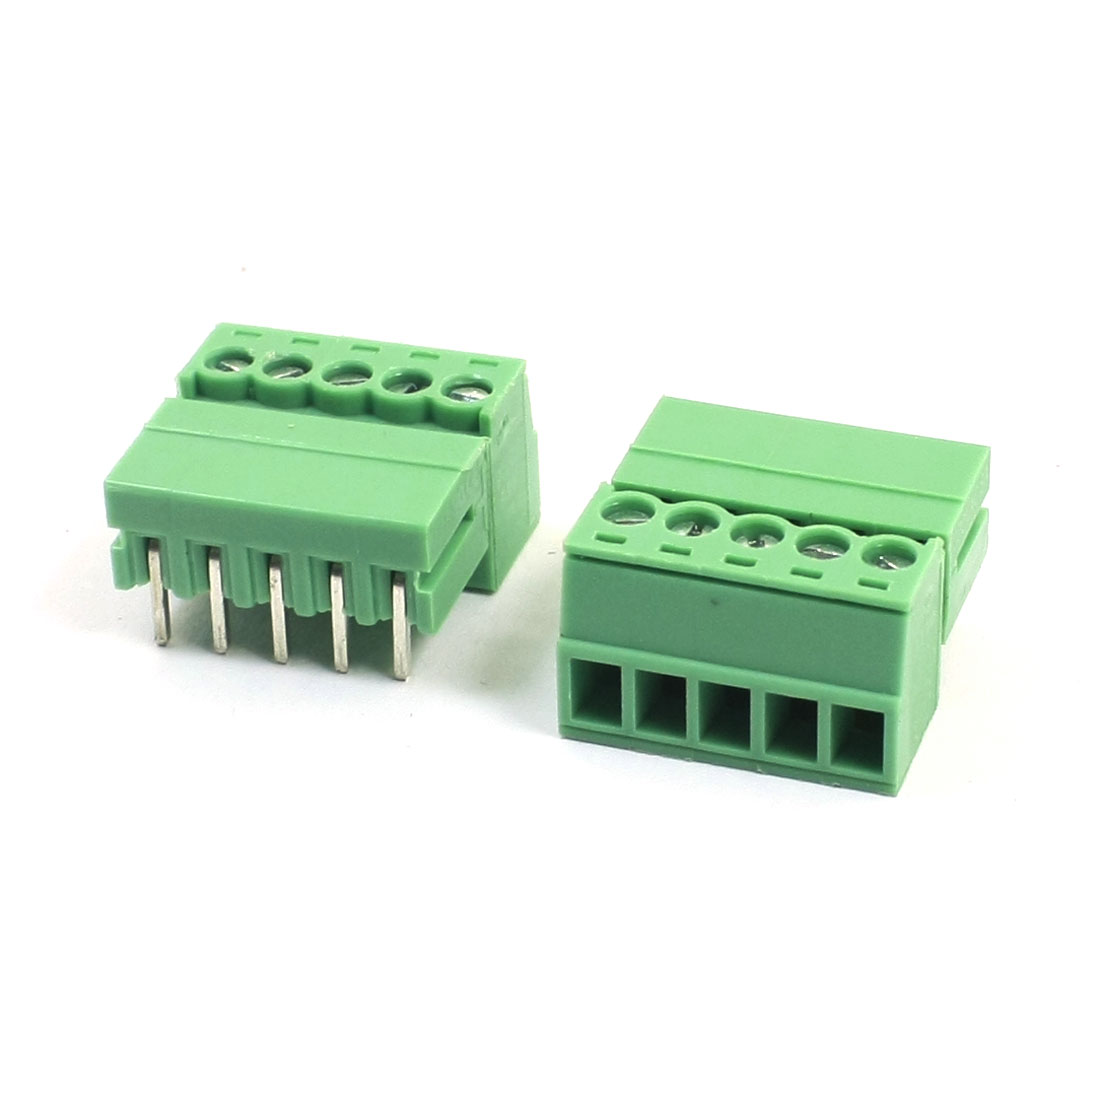 2Pcs AC300V 8A 3.5mm Pitch 5Pin Through Hole Pluggable Type PCB Screw Terminal Barrier Block Connector for 22-16AWG Wire